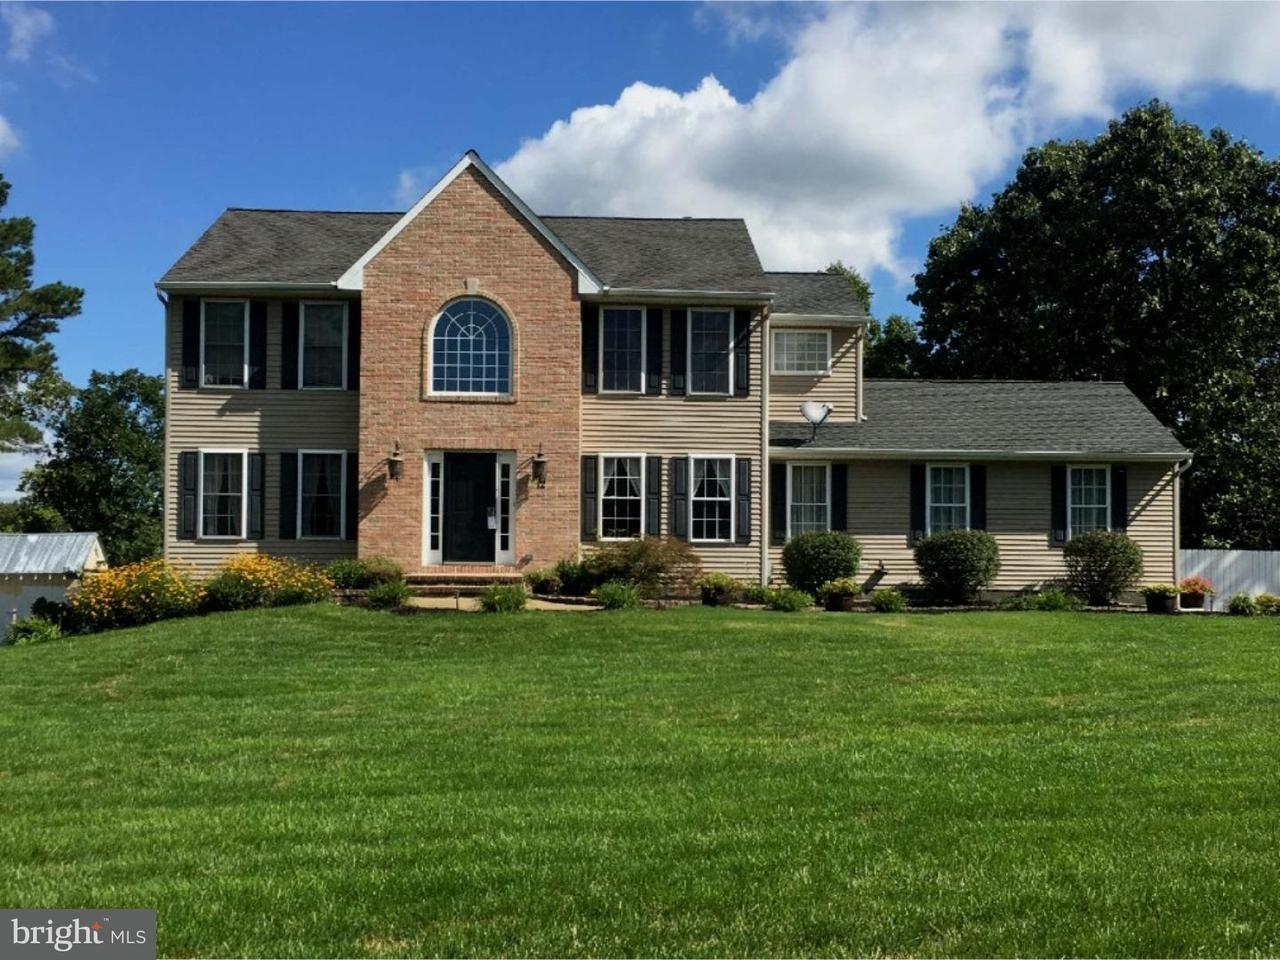 Single Family Home for Sale at 12 LOCUST HILL Court Alloway, New Jersey 08302 United States